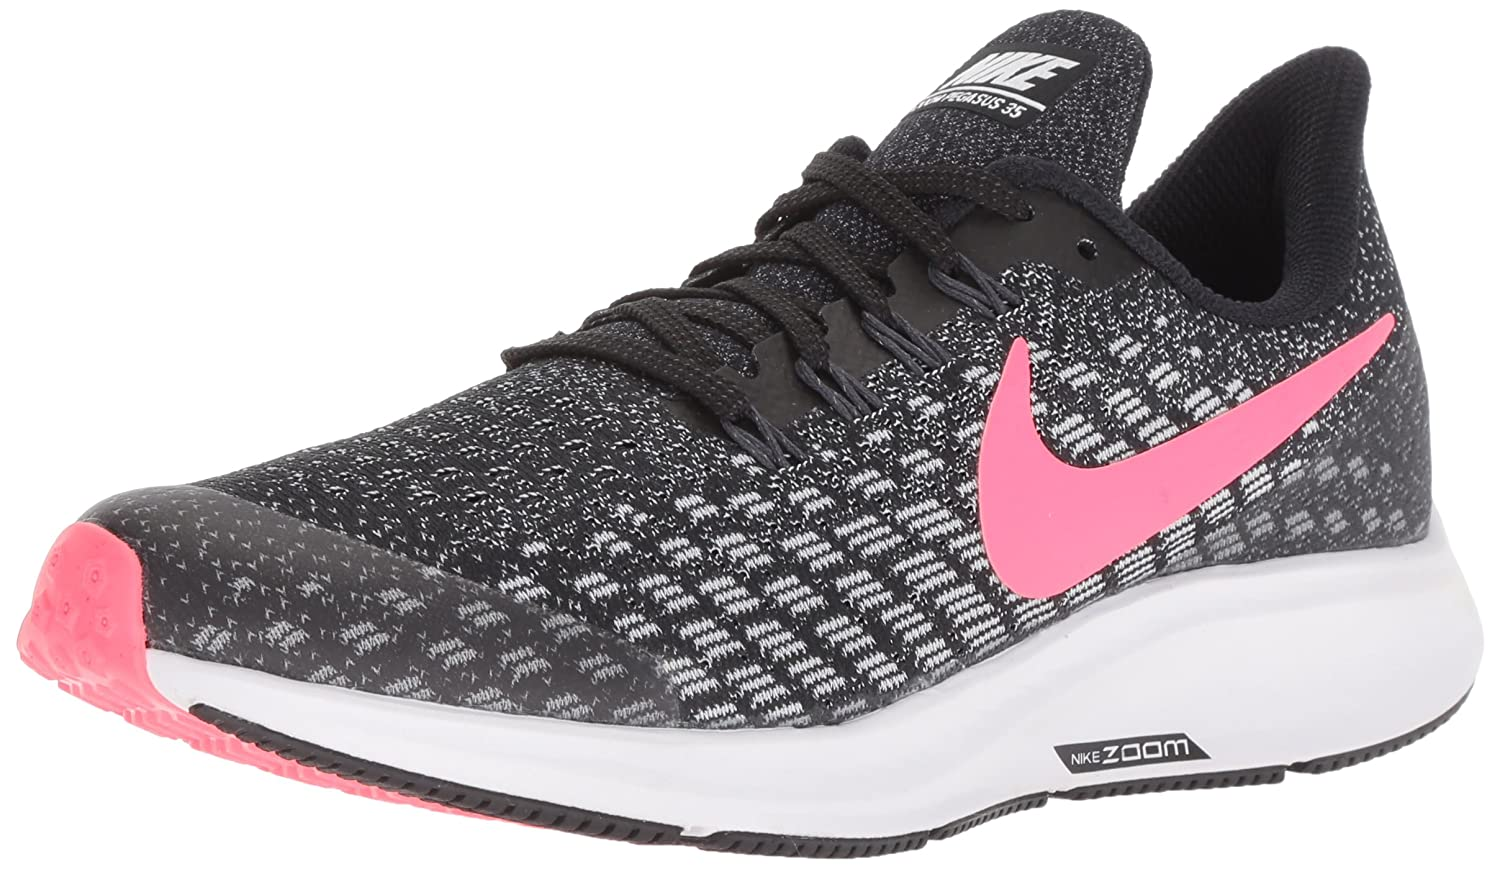 outlet store 79e25 5c62f Nike Girl's Air Zoom Pegasus 35 Running Shoe